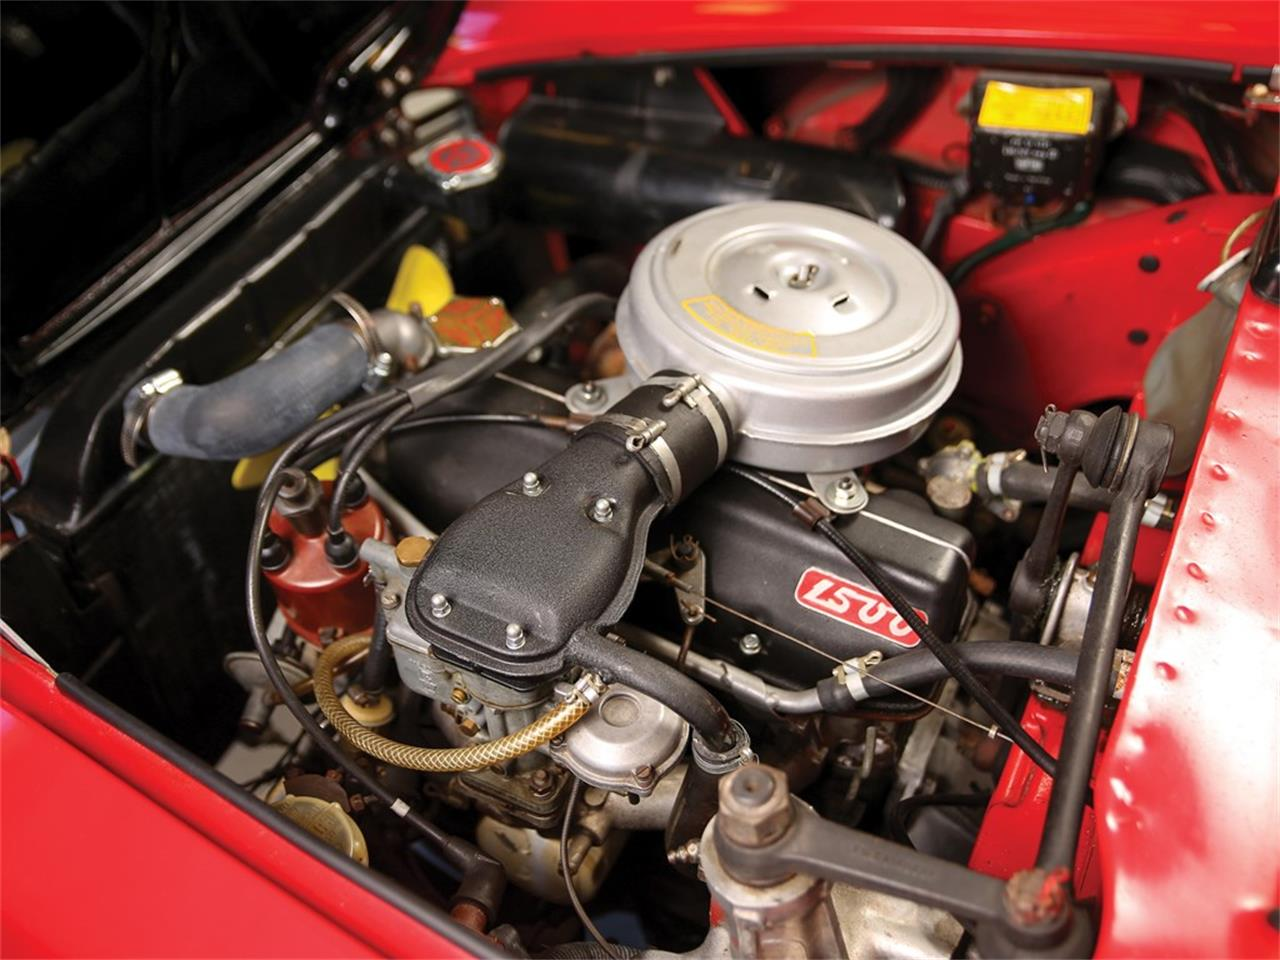 1965 Fiat Abarth 1500 for sale in Fort Lauderdale, FL – photo 3